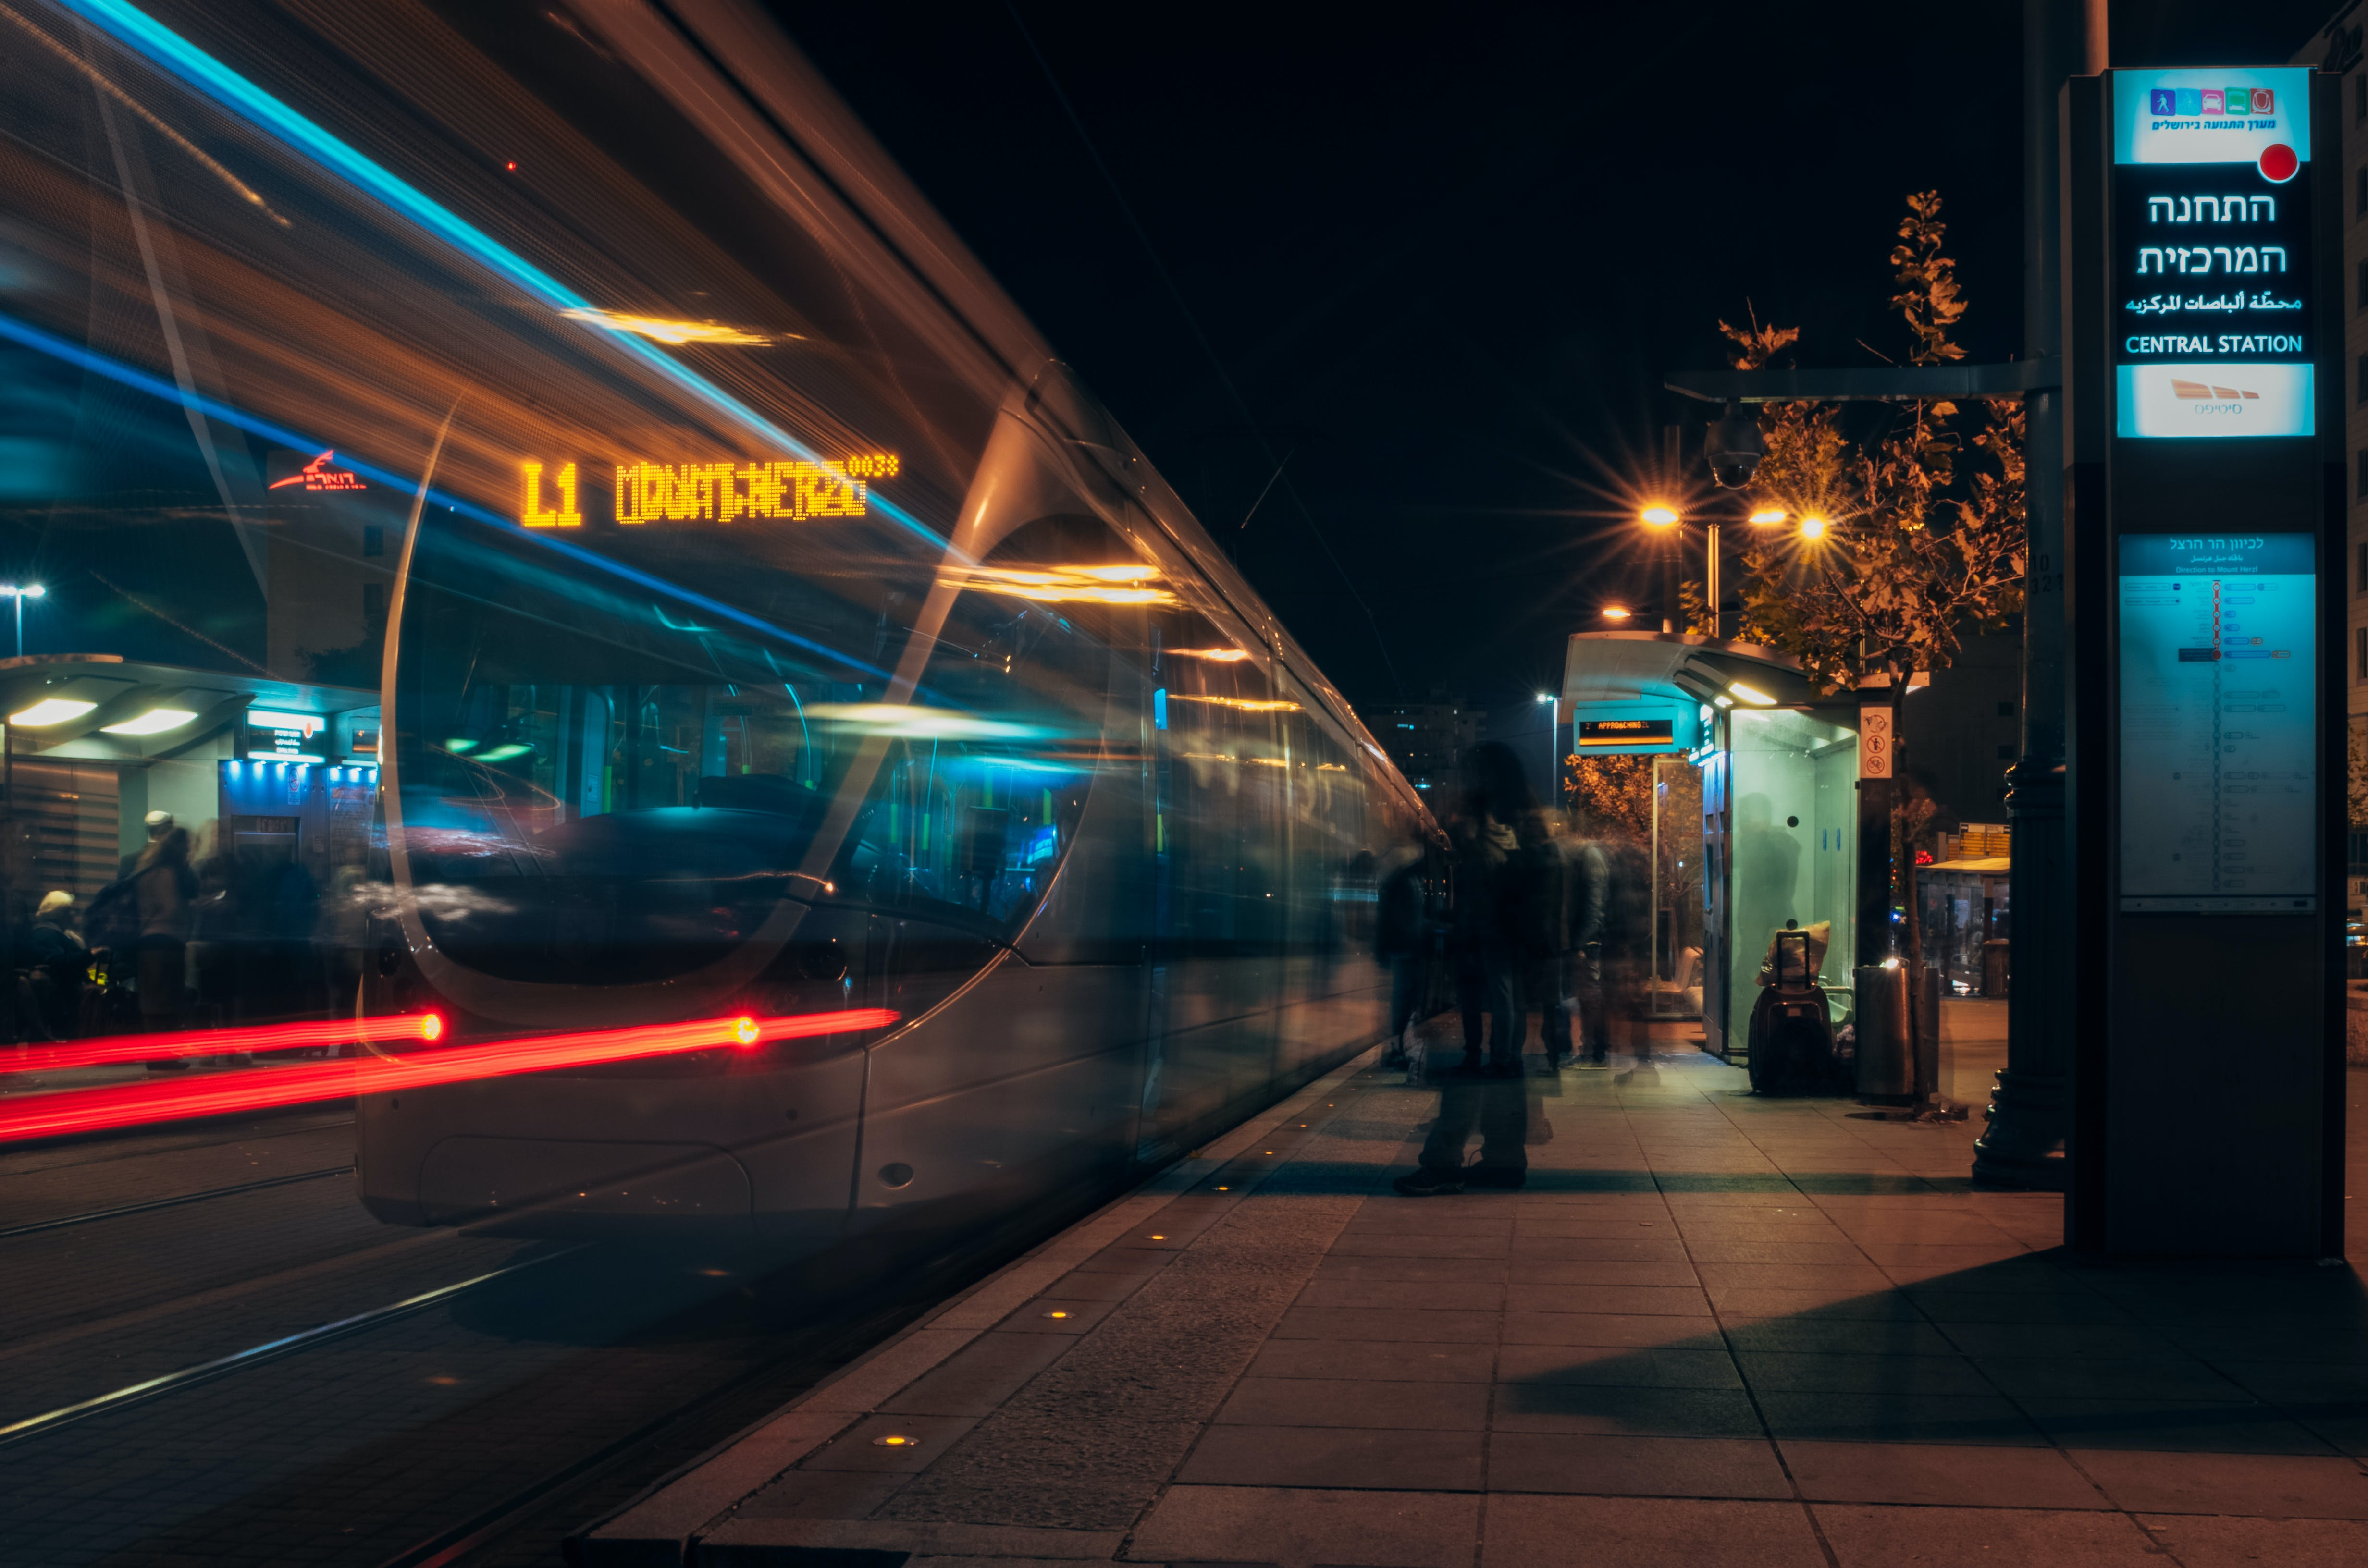 Free stock photo of night, train, public transportation, tram